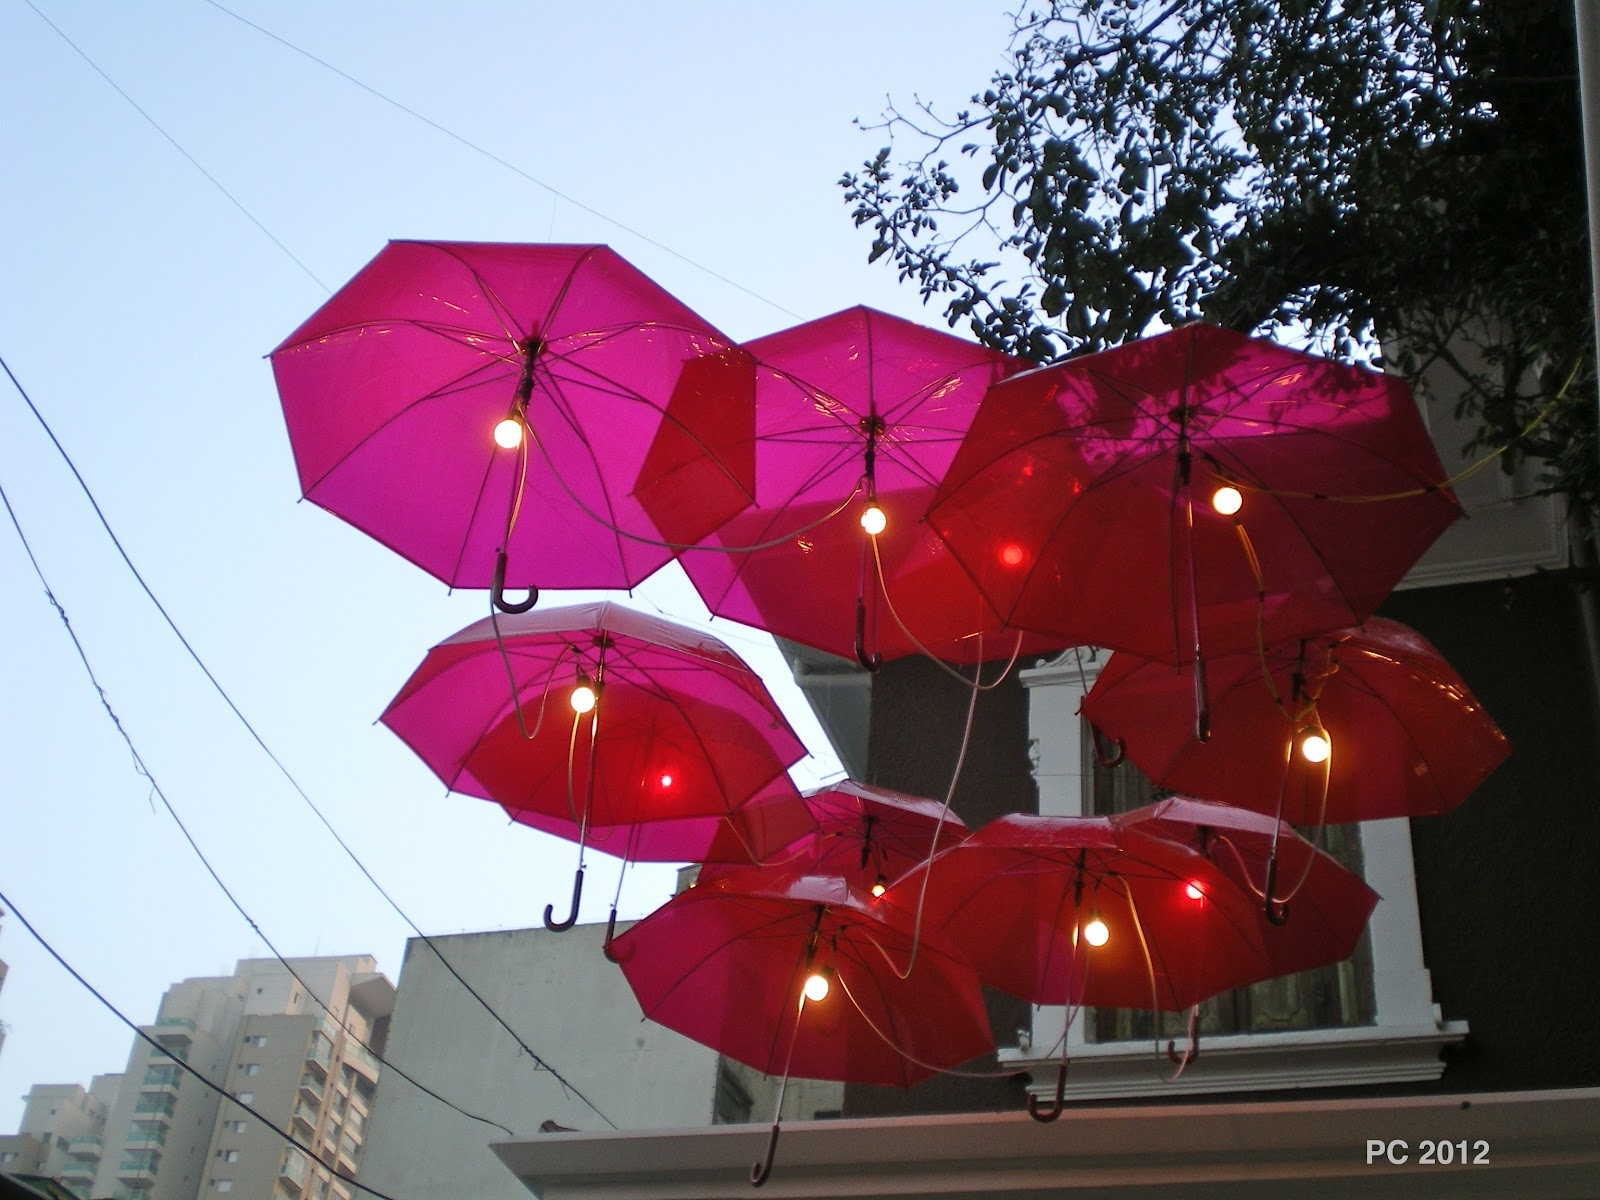 The lookout diy design floating umbrella lights for Architecture upbrella